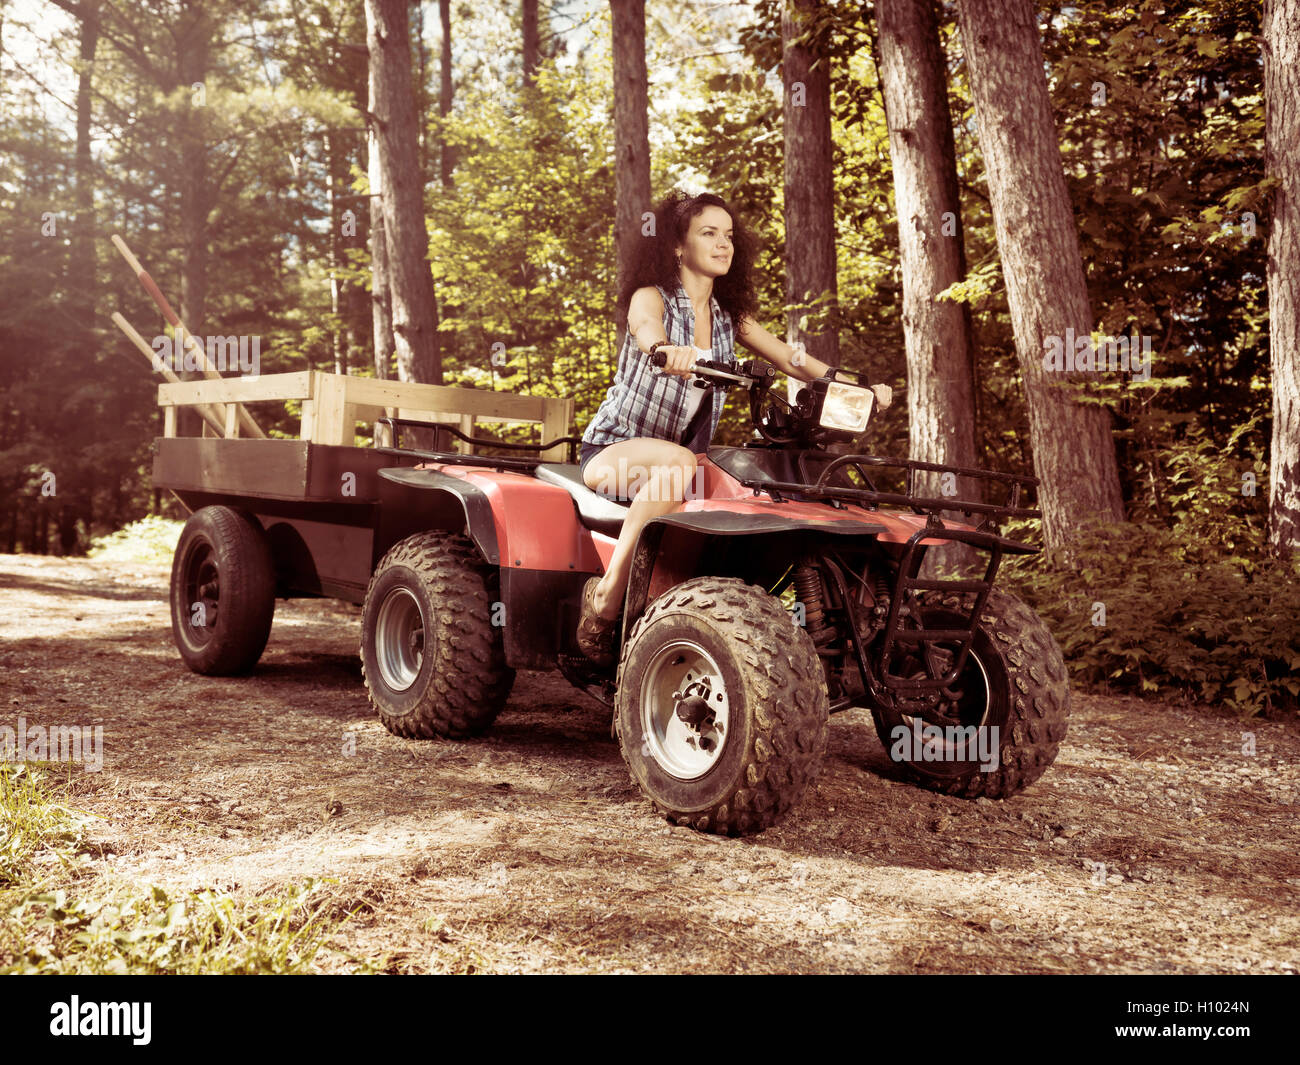 Young farm woman gardener riding an ATV with a trailer along tree lined country road. Muskoka, Ontario, Canada. - Stock Image